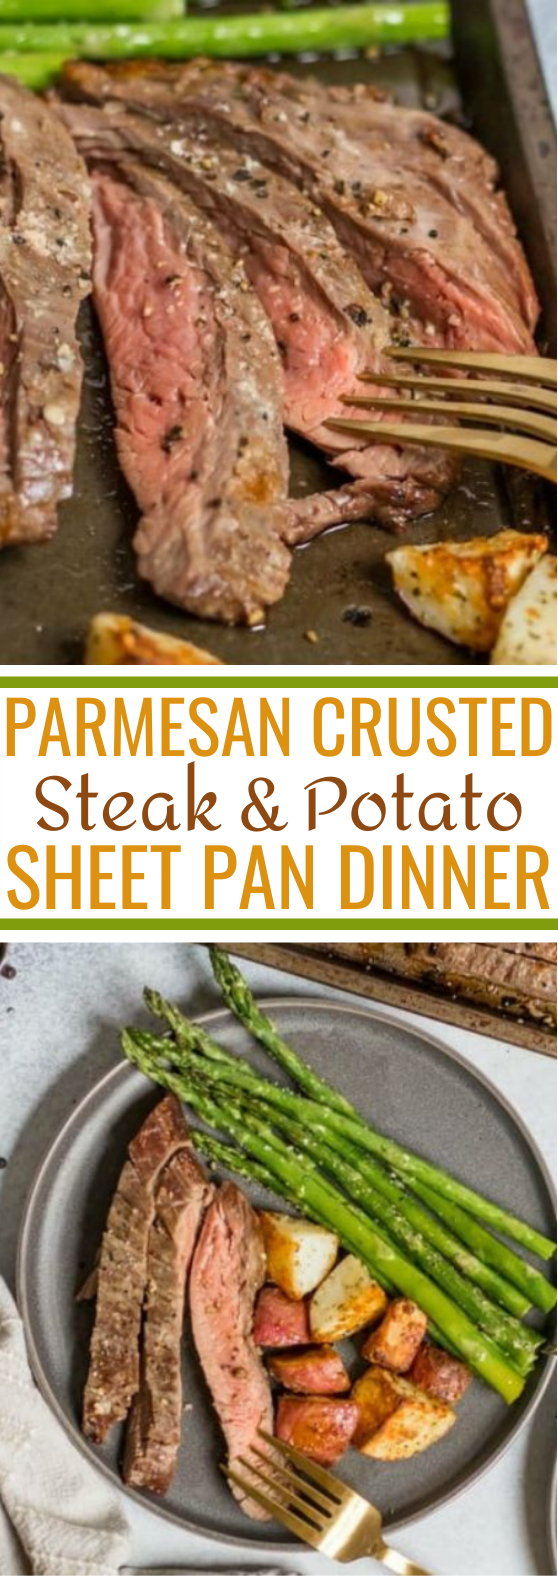 Parmesan Crusted Steak and Potato Sheet Pan Dinner #easy #dinner #lunch #weeknight #recipes